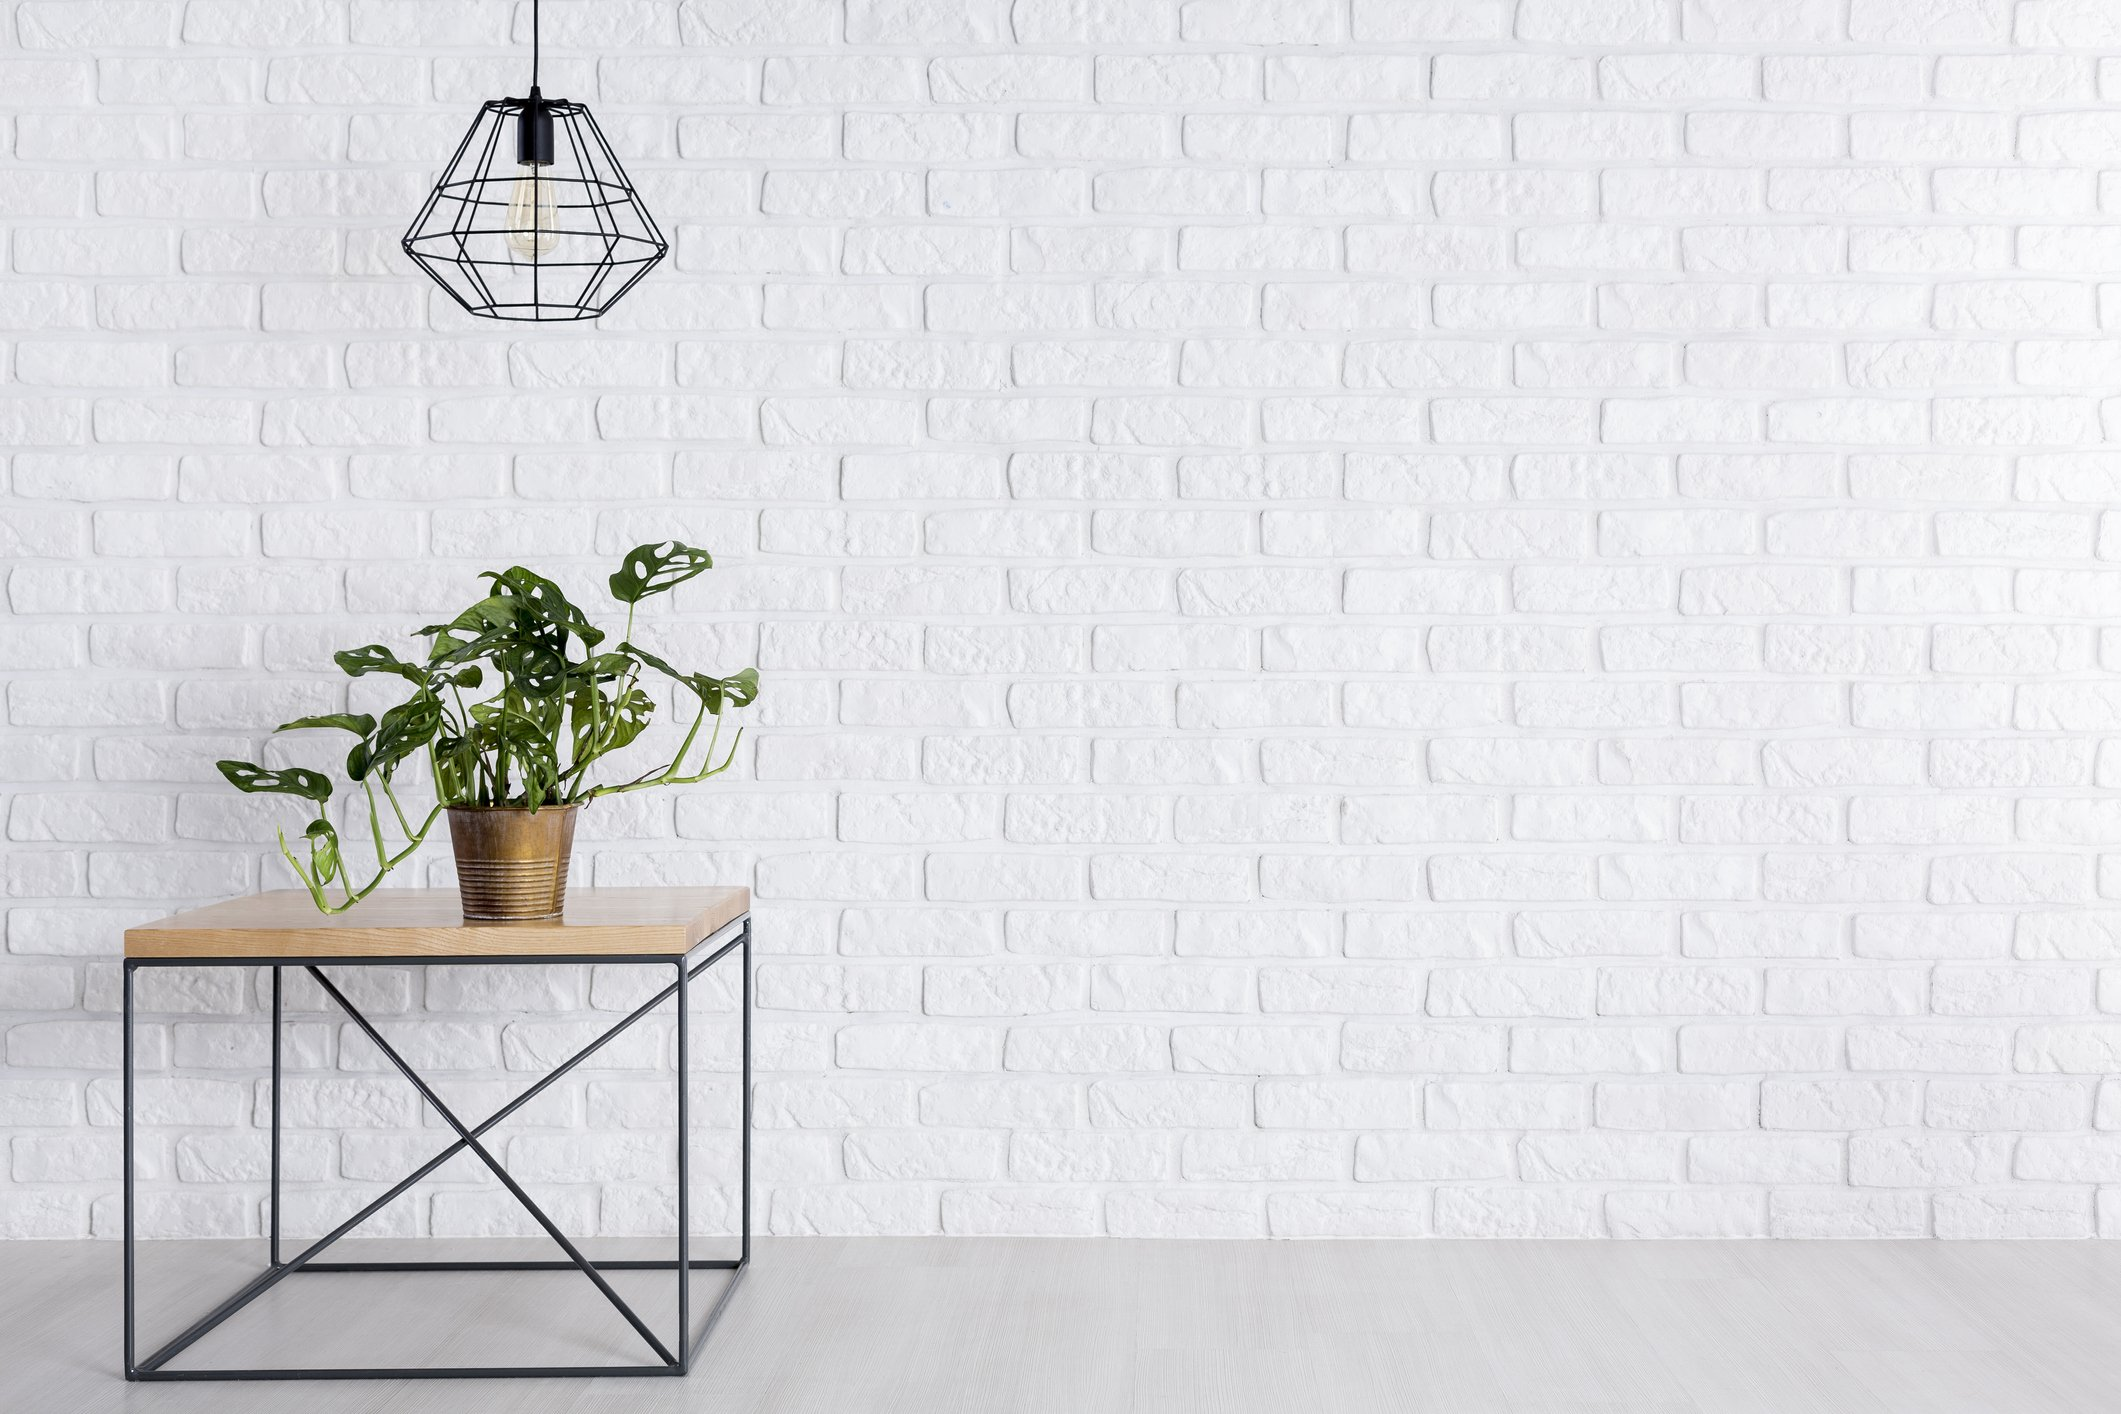 Fresh green potted plant standing on square table in room with empty brick wall